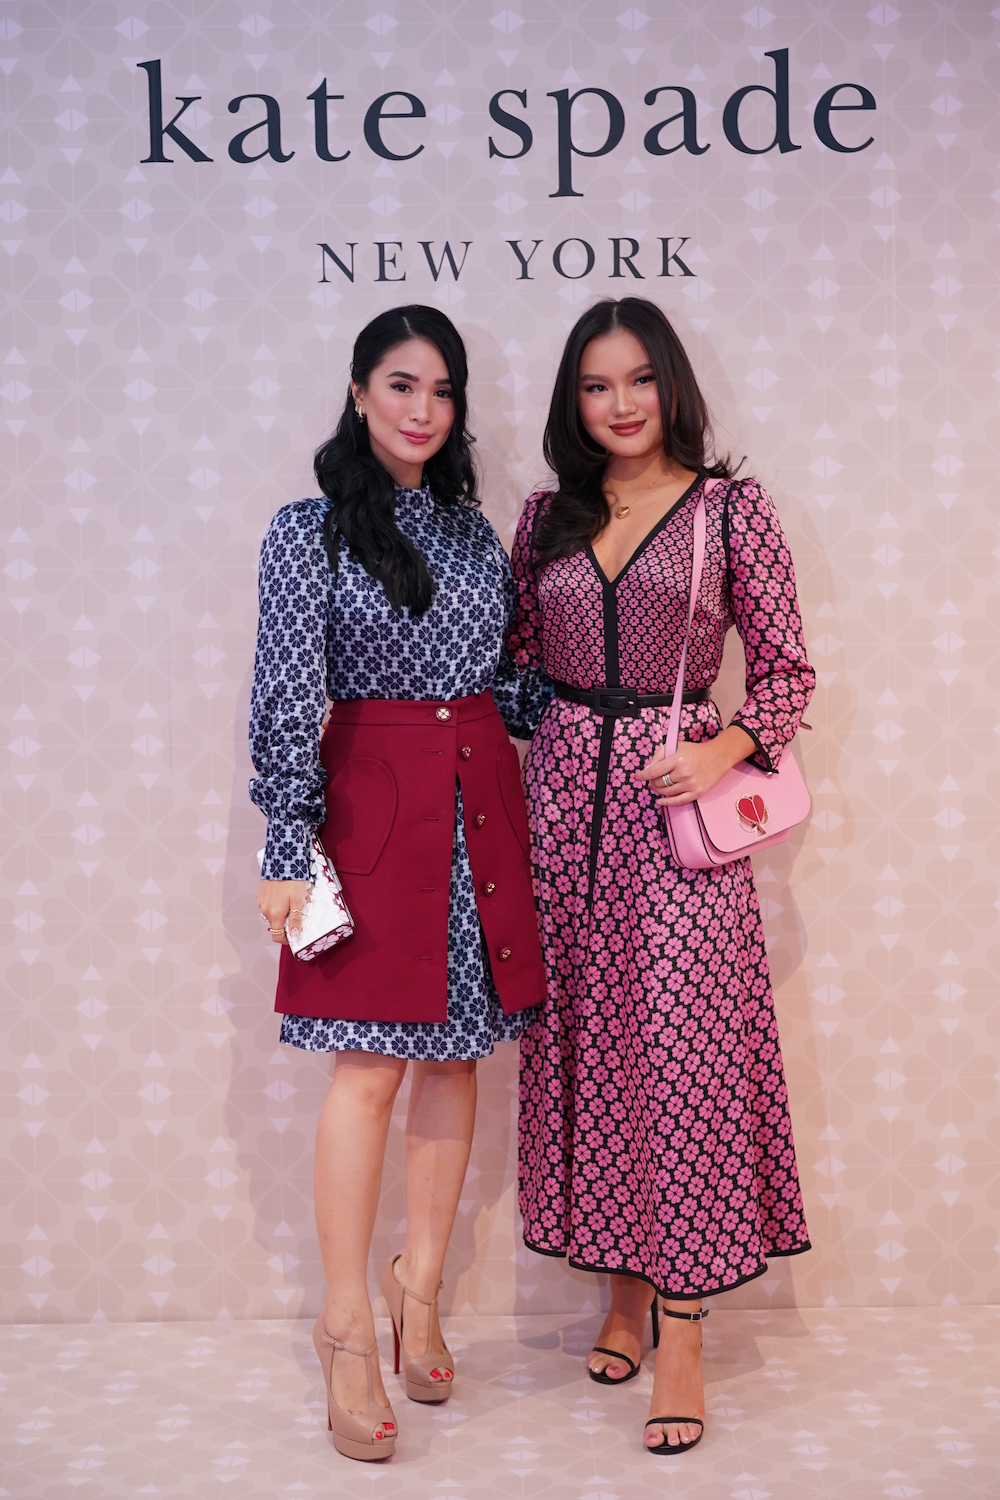 Heart Evangelista and Nikki Huang.jpg